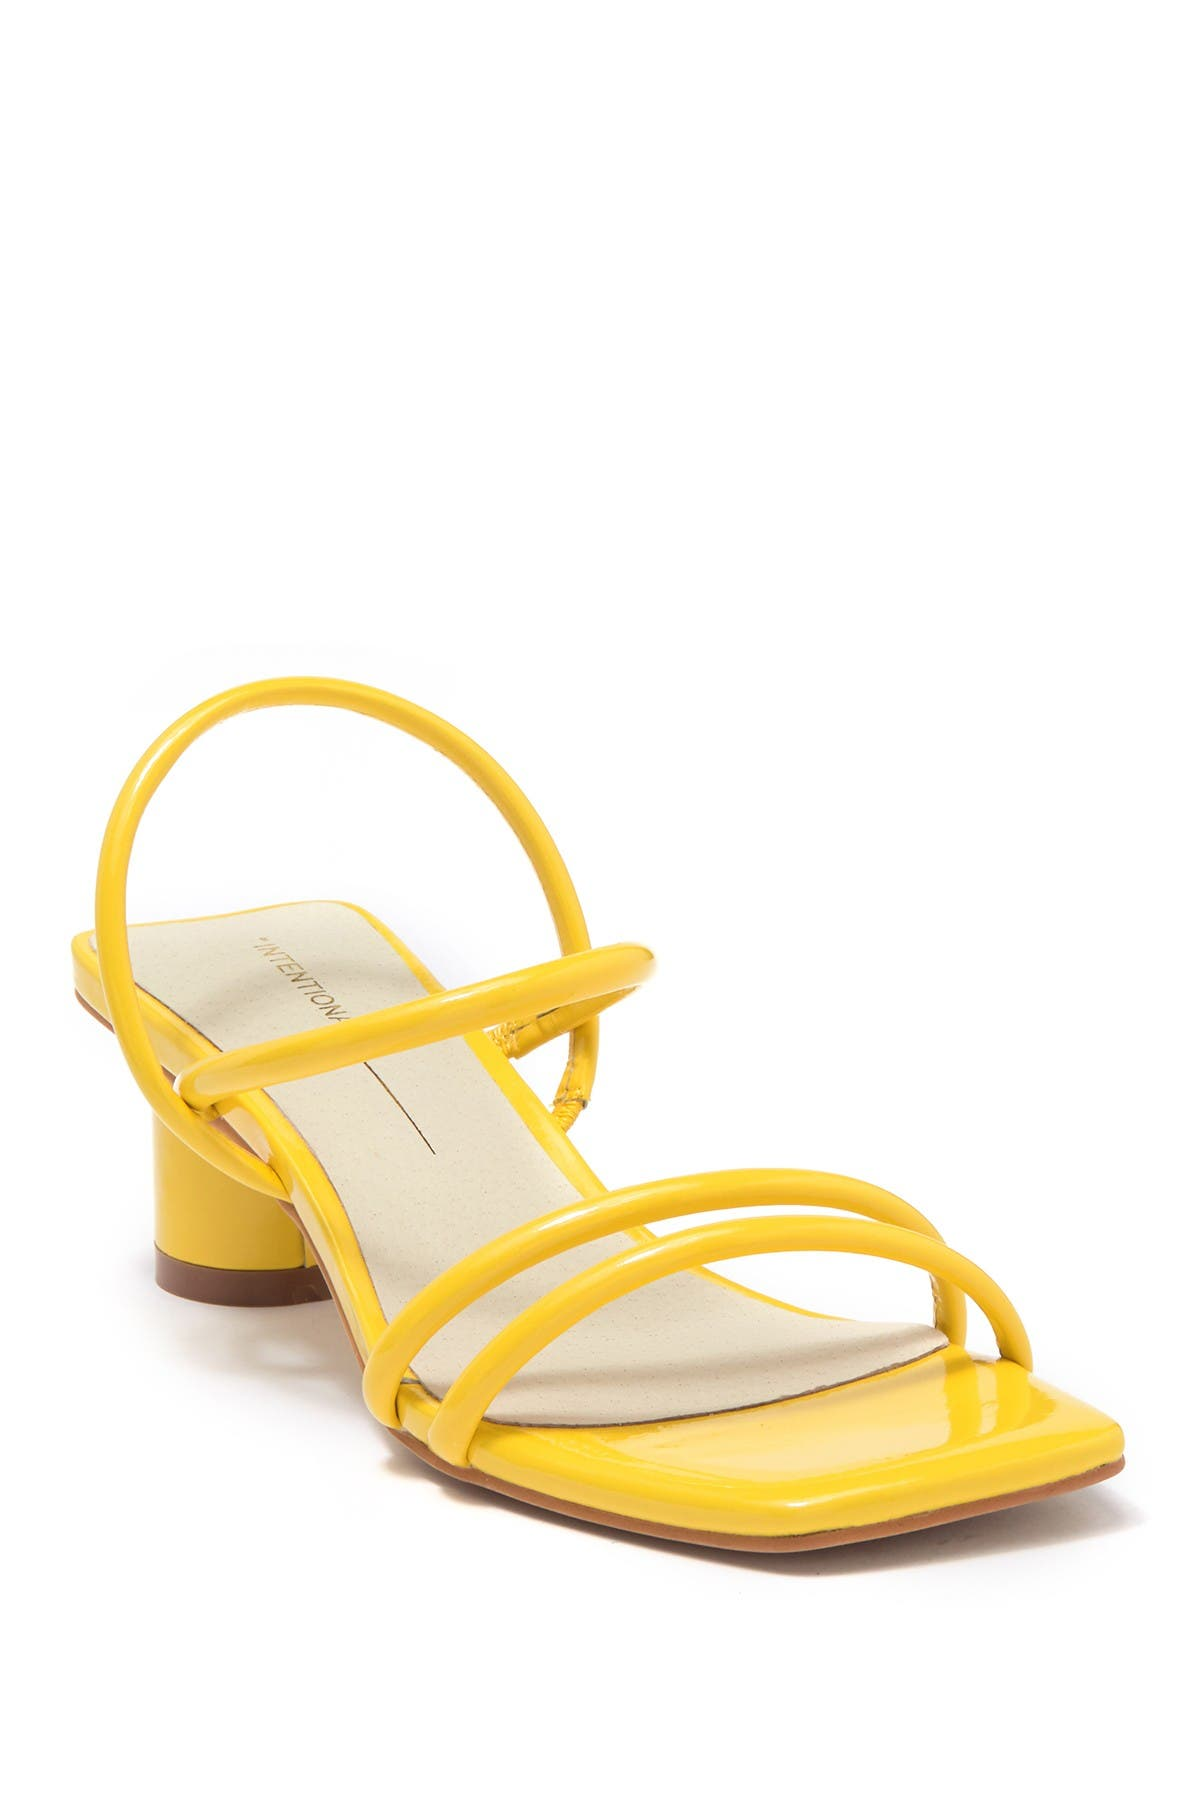 Image of Intentionally Blank Hiya Squared Sandal